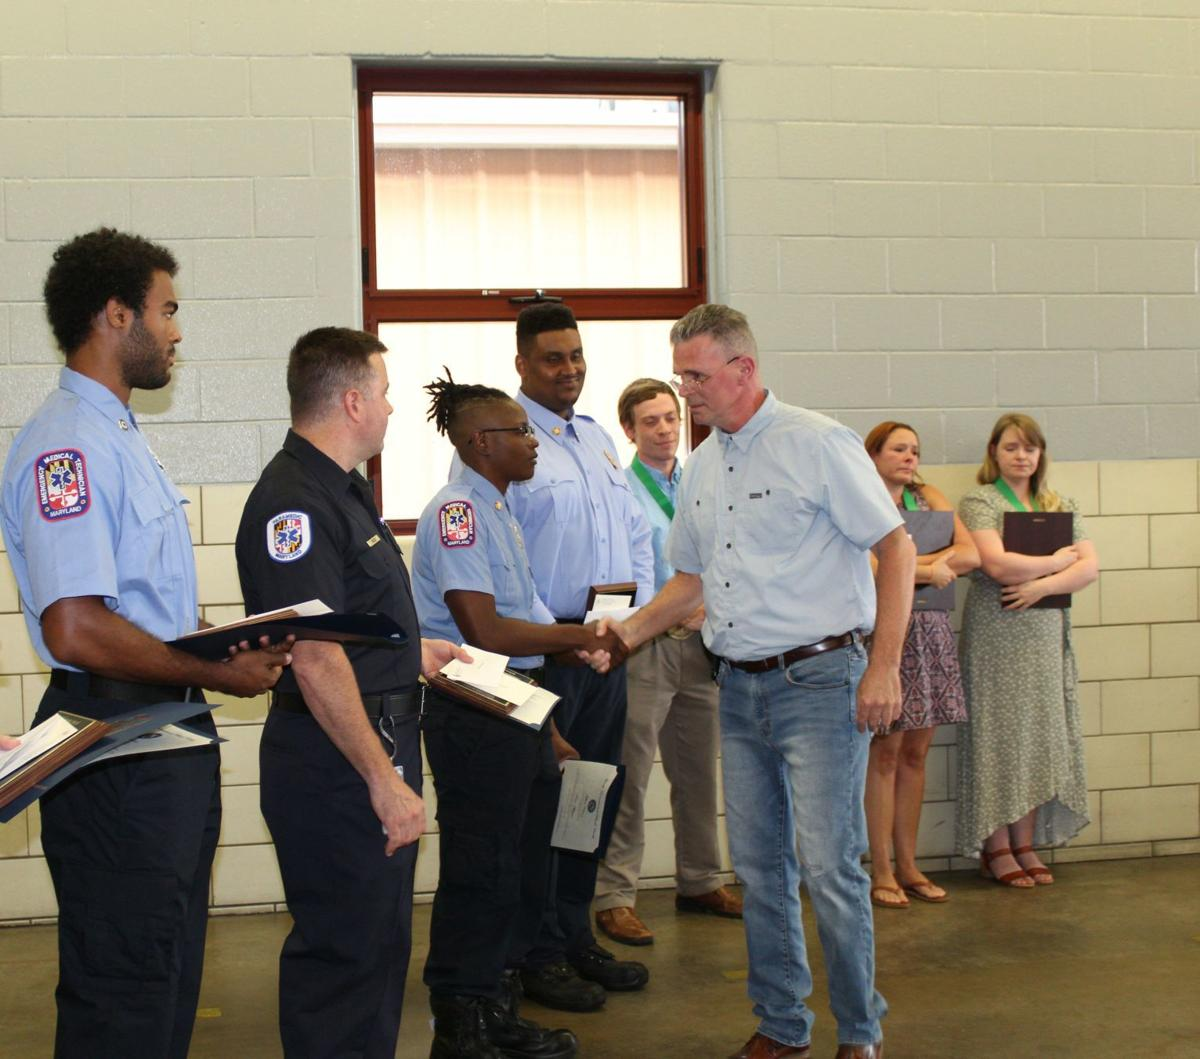 Citizens honored for response to near-tragedy at a funeral